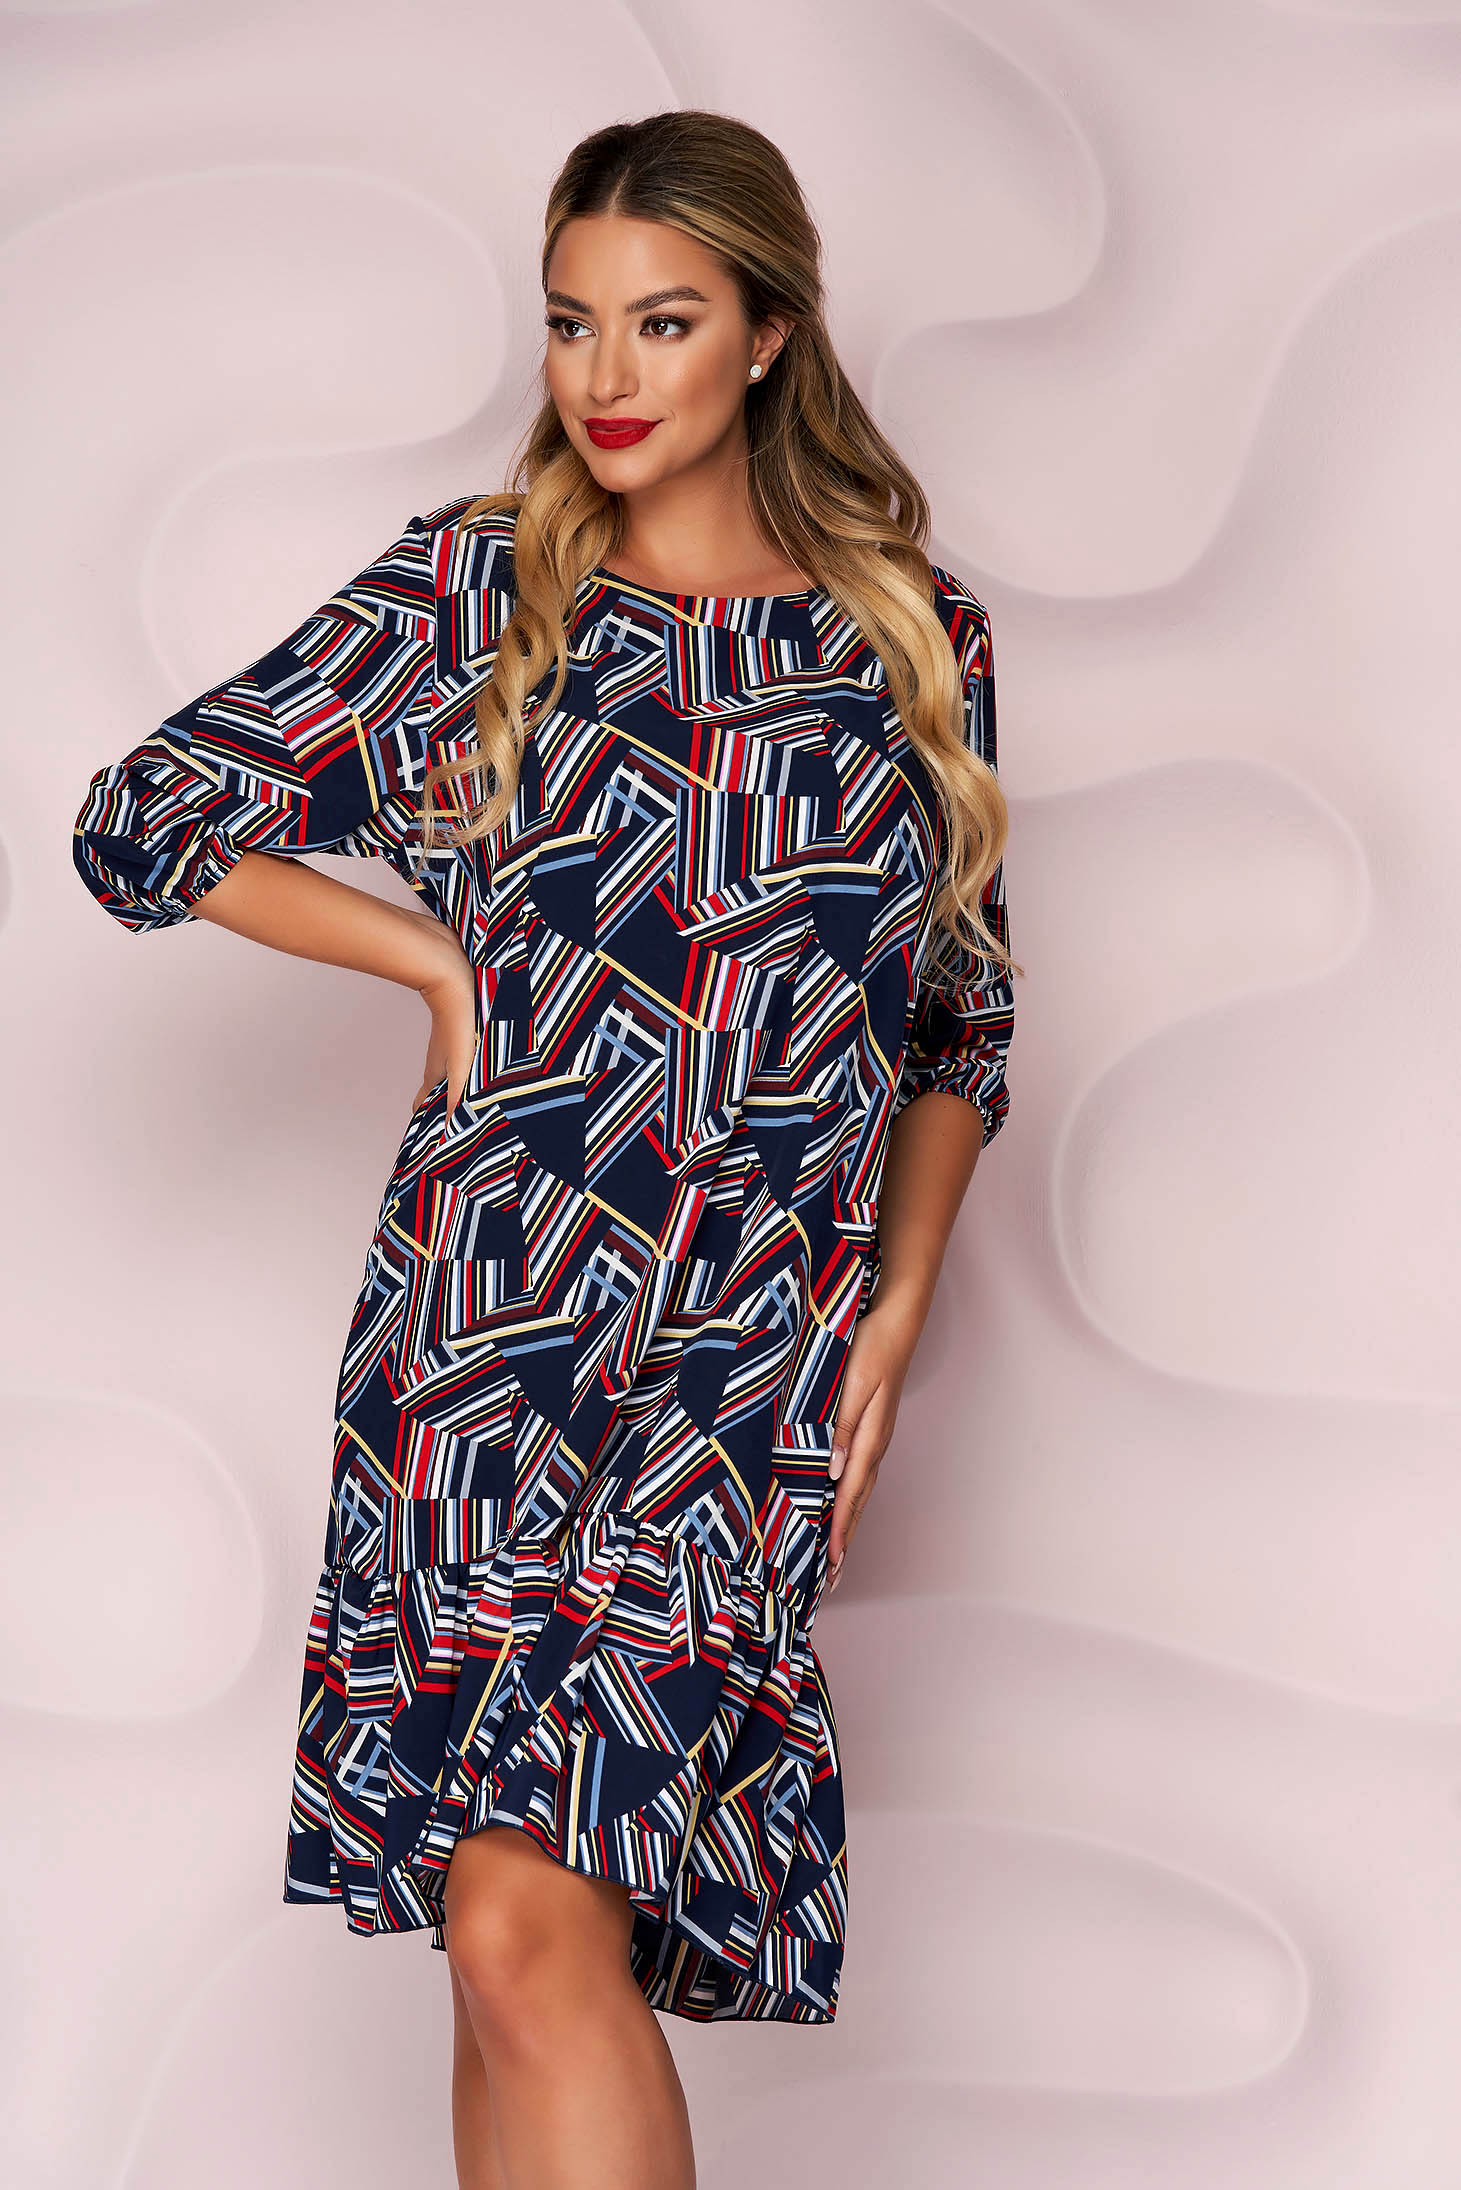 Dress office midi thin fabric slightly elastic fabric with ruffles at the buttom of the dress